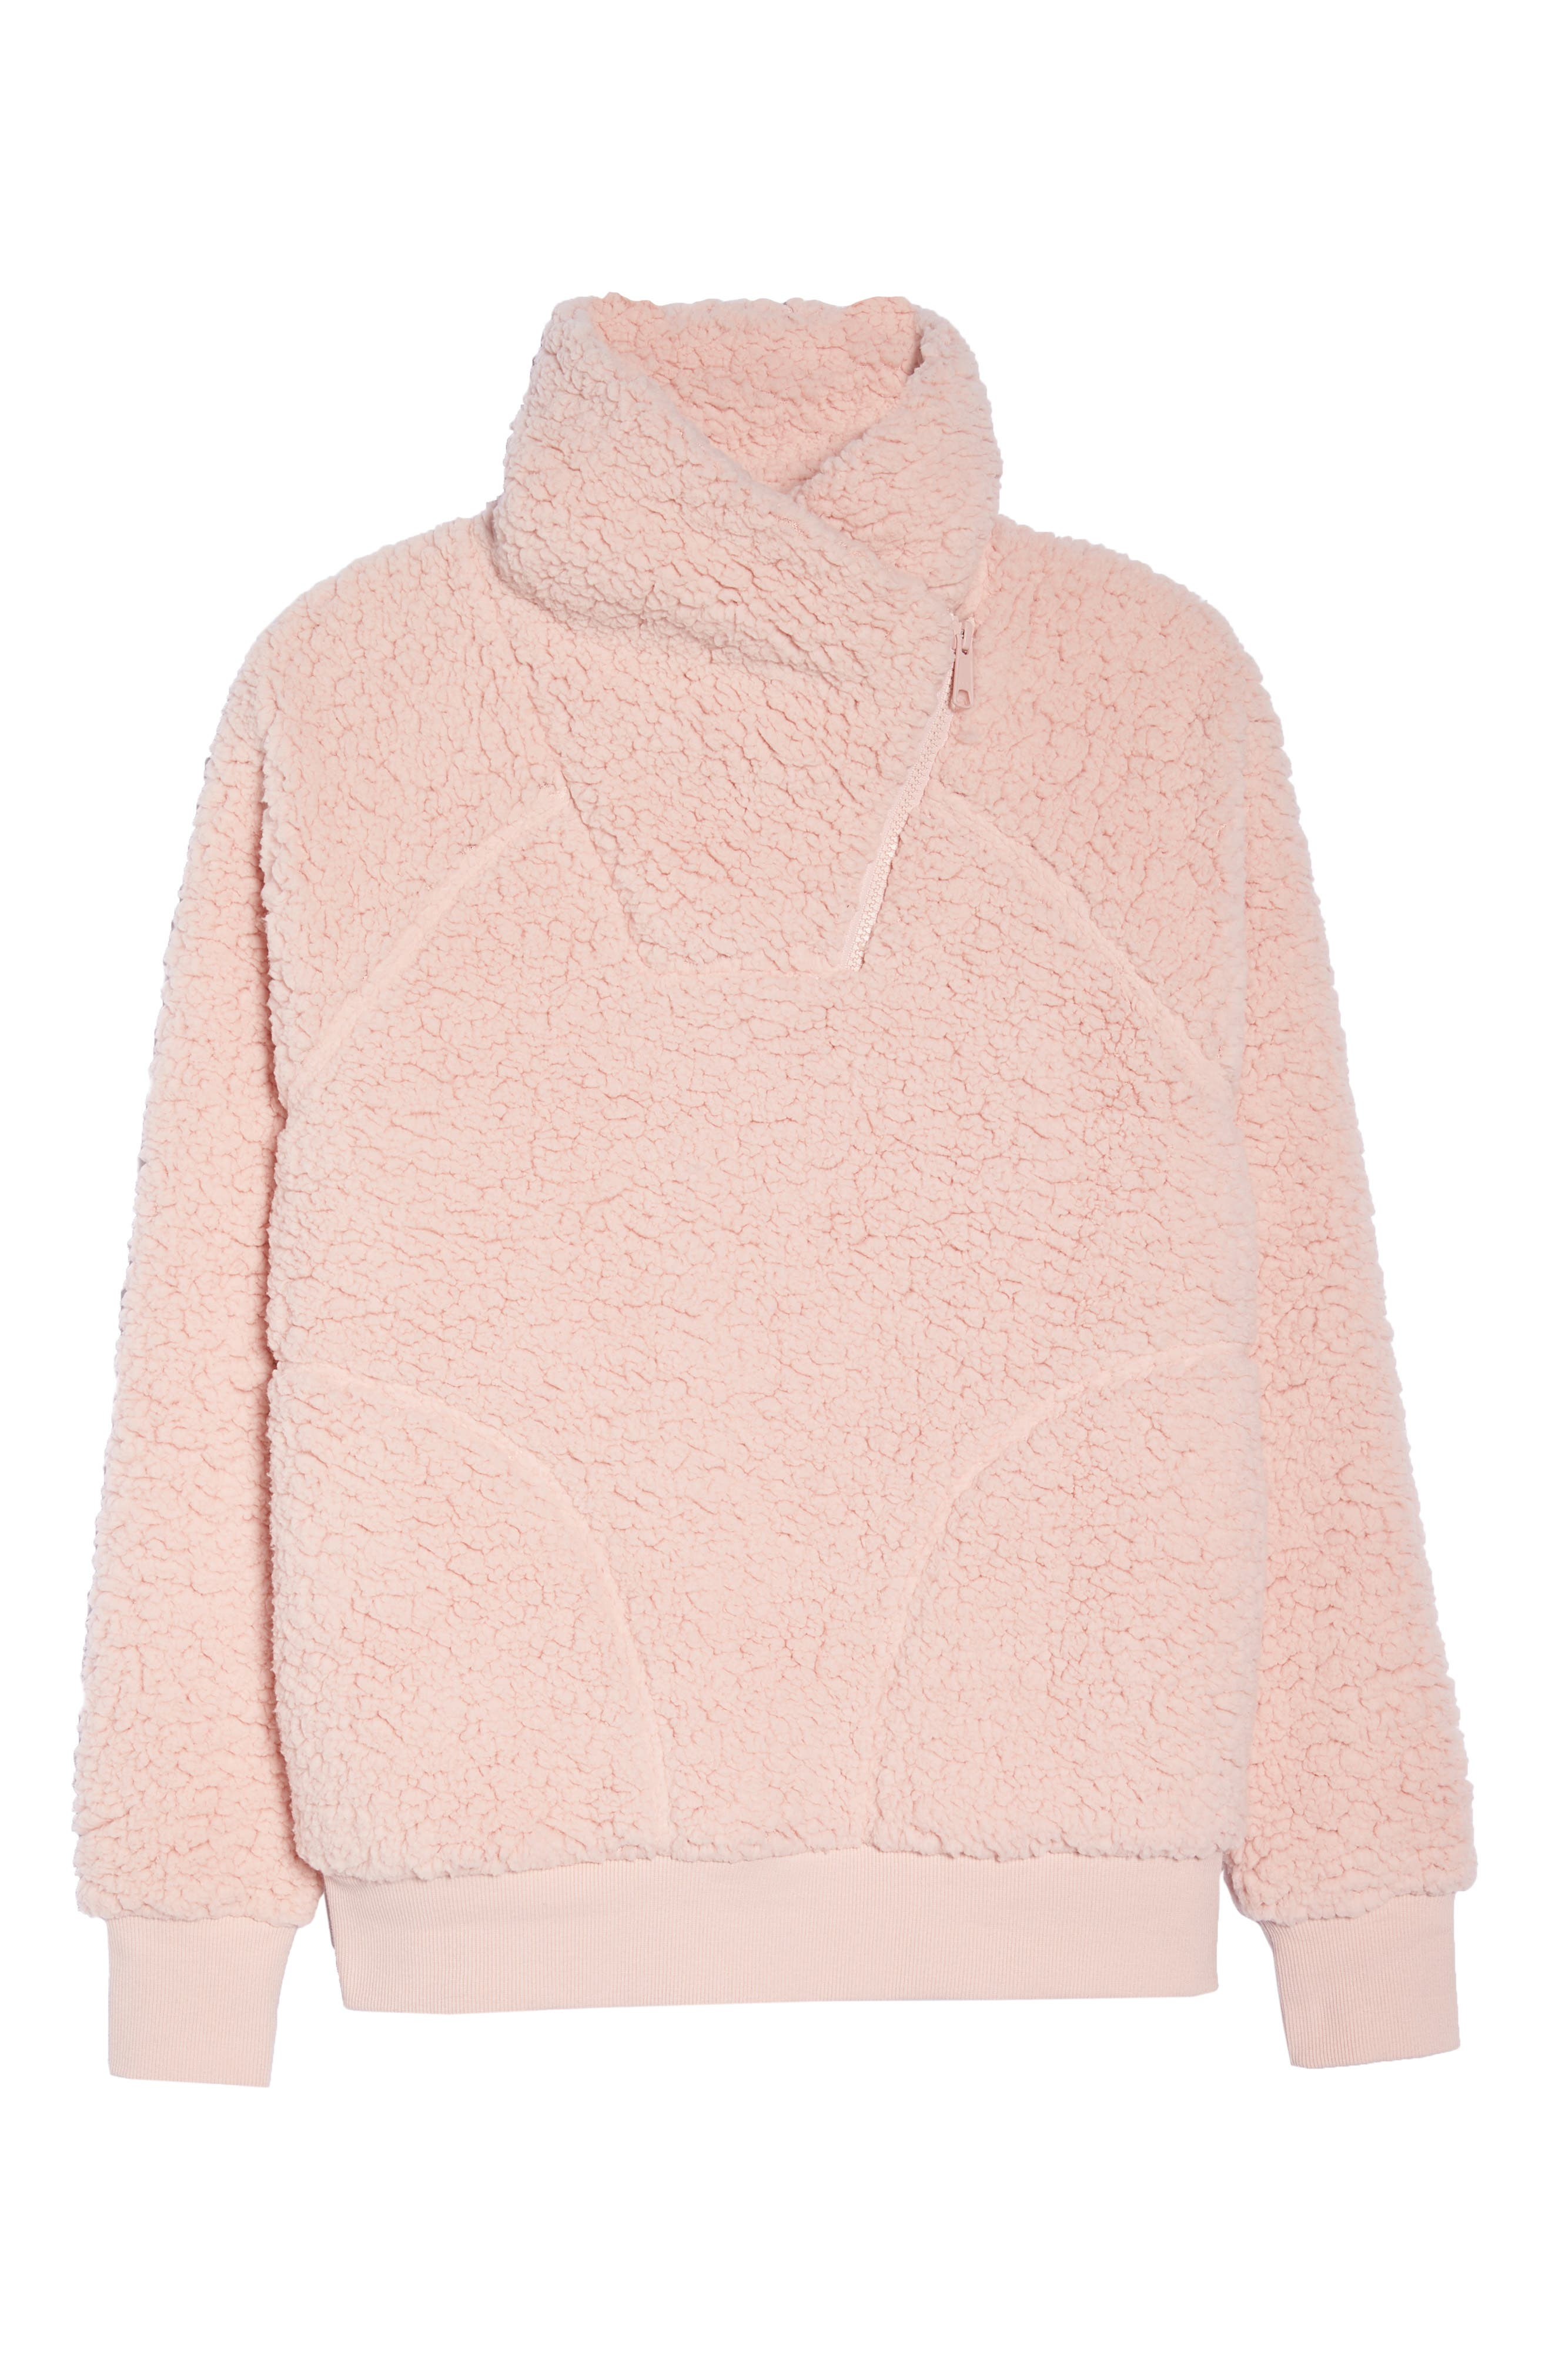 Shear Up Pullover,                             Alternate thumbnail 7, color,                             PINK PEACHSKIN